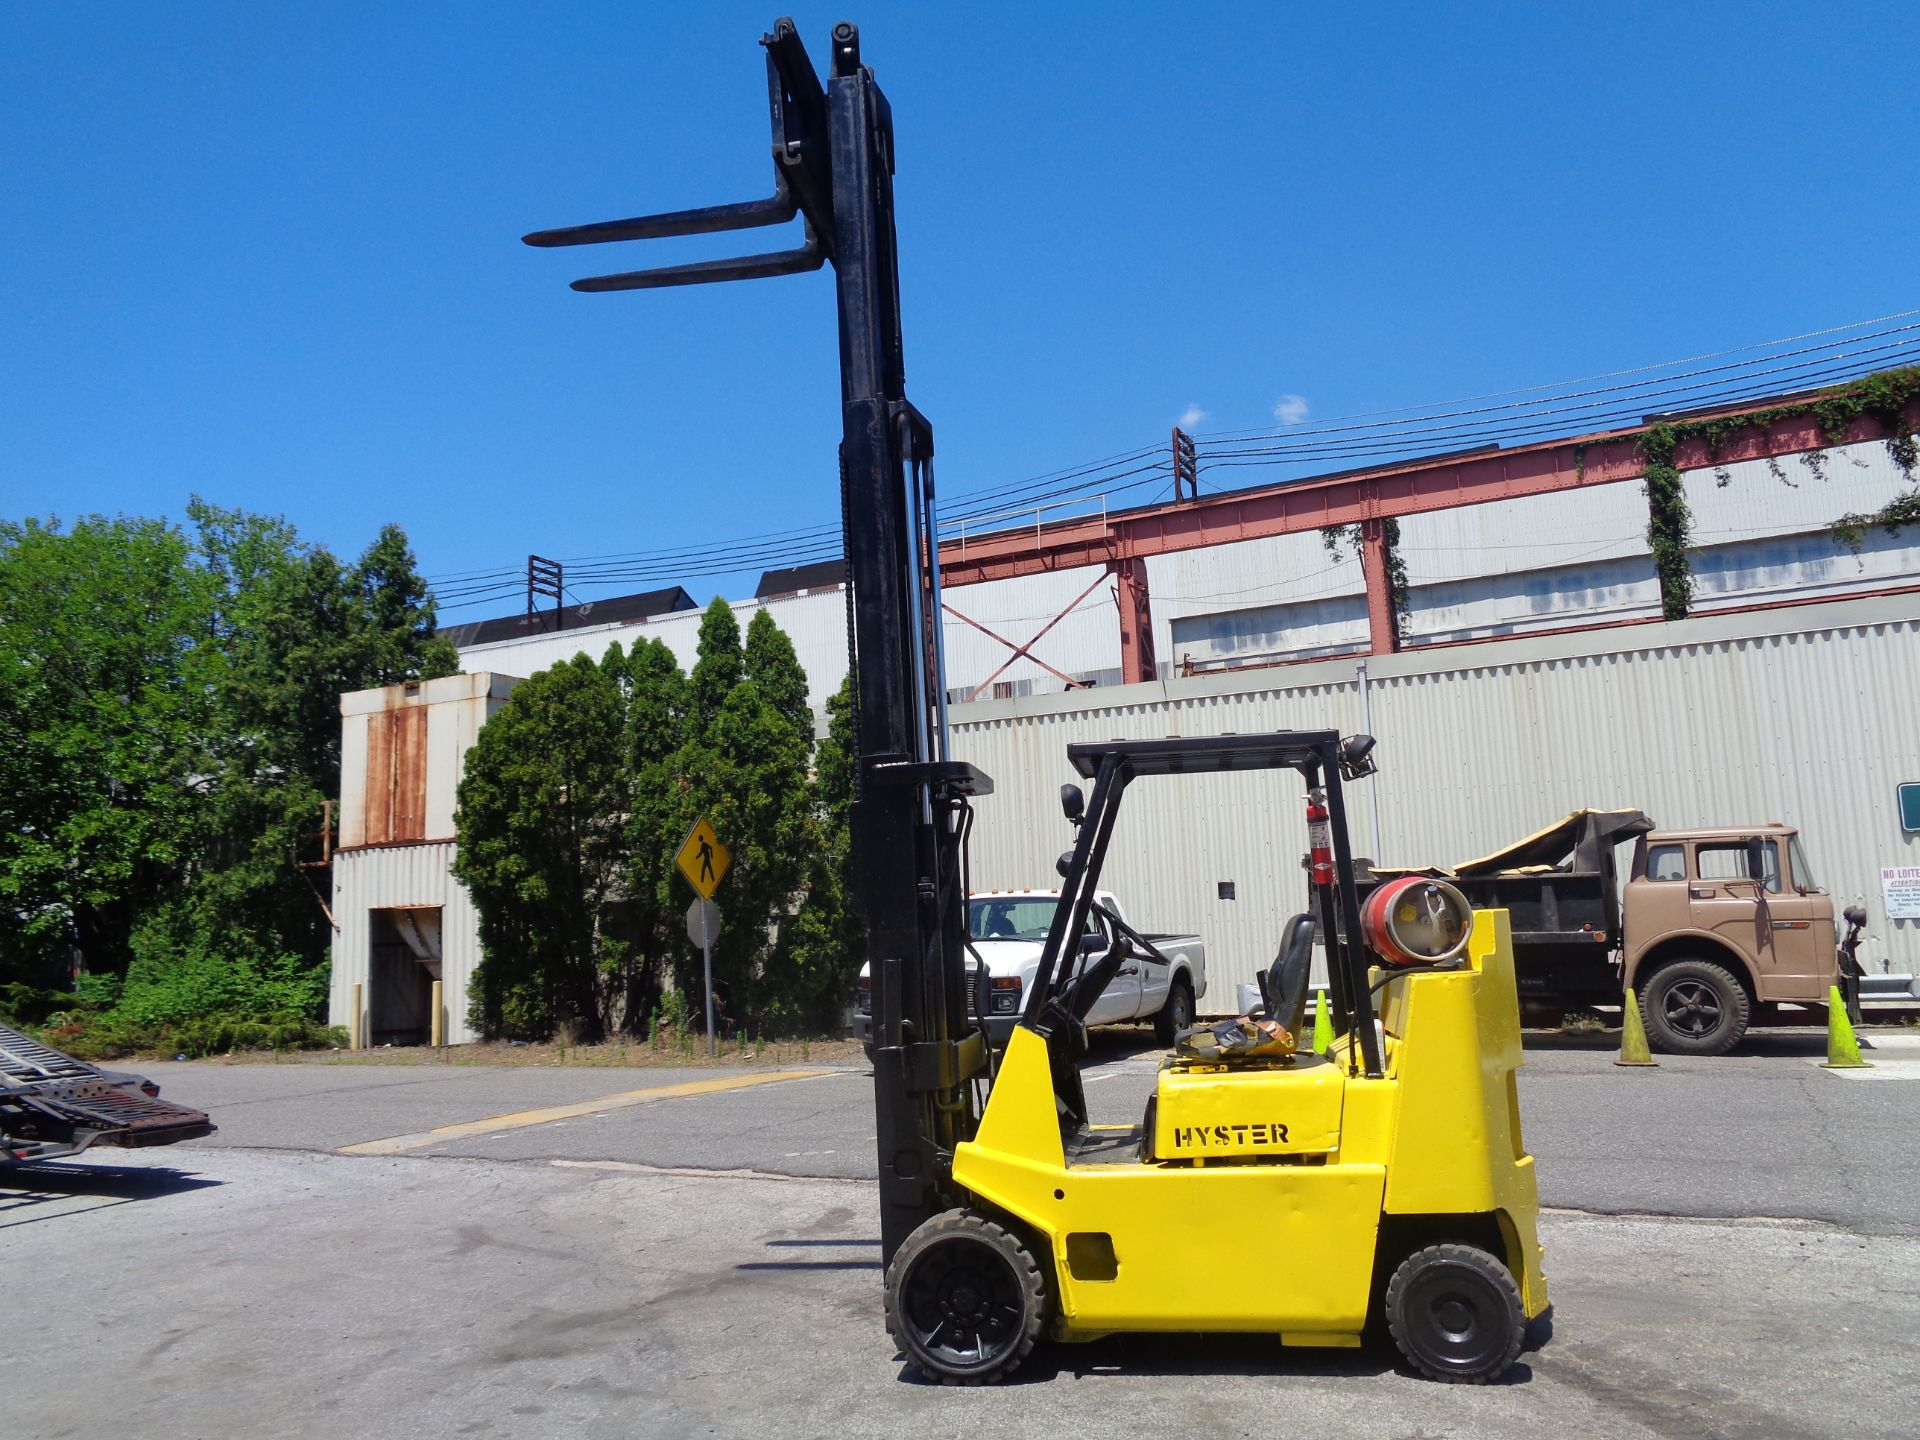 Hyster S80XL 8,000 lbs Forklift - Image 4 of 13